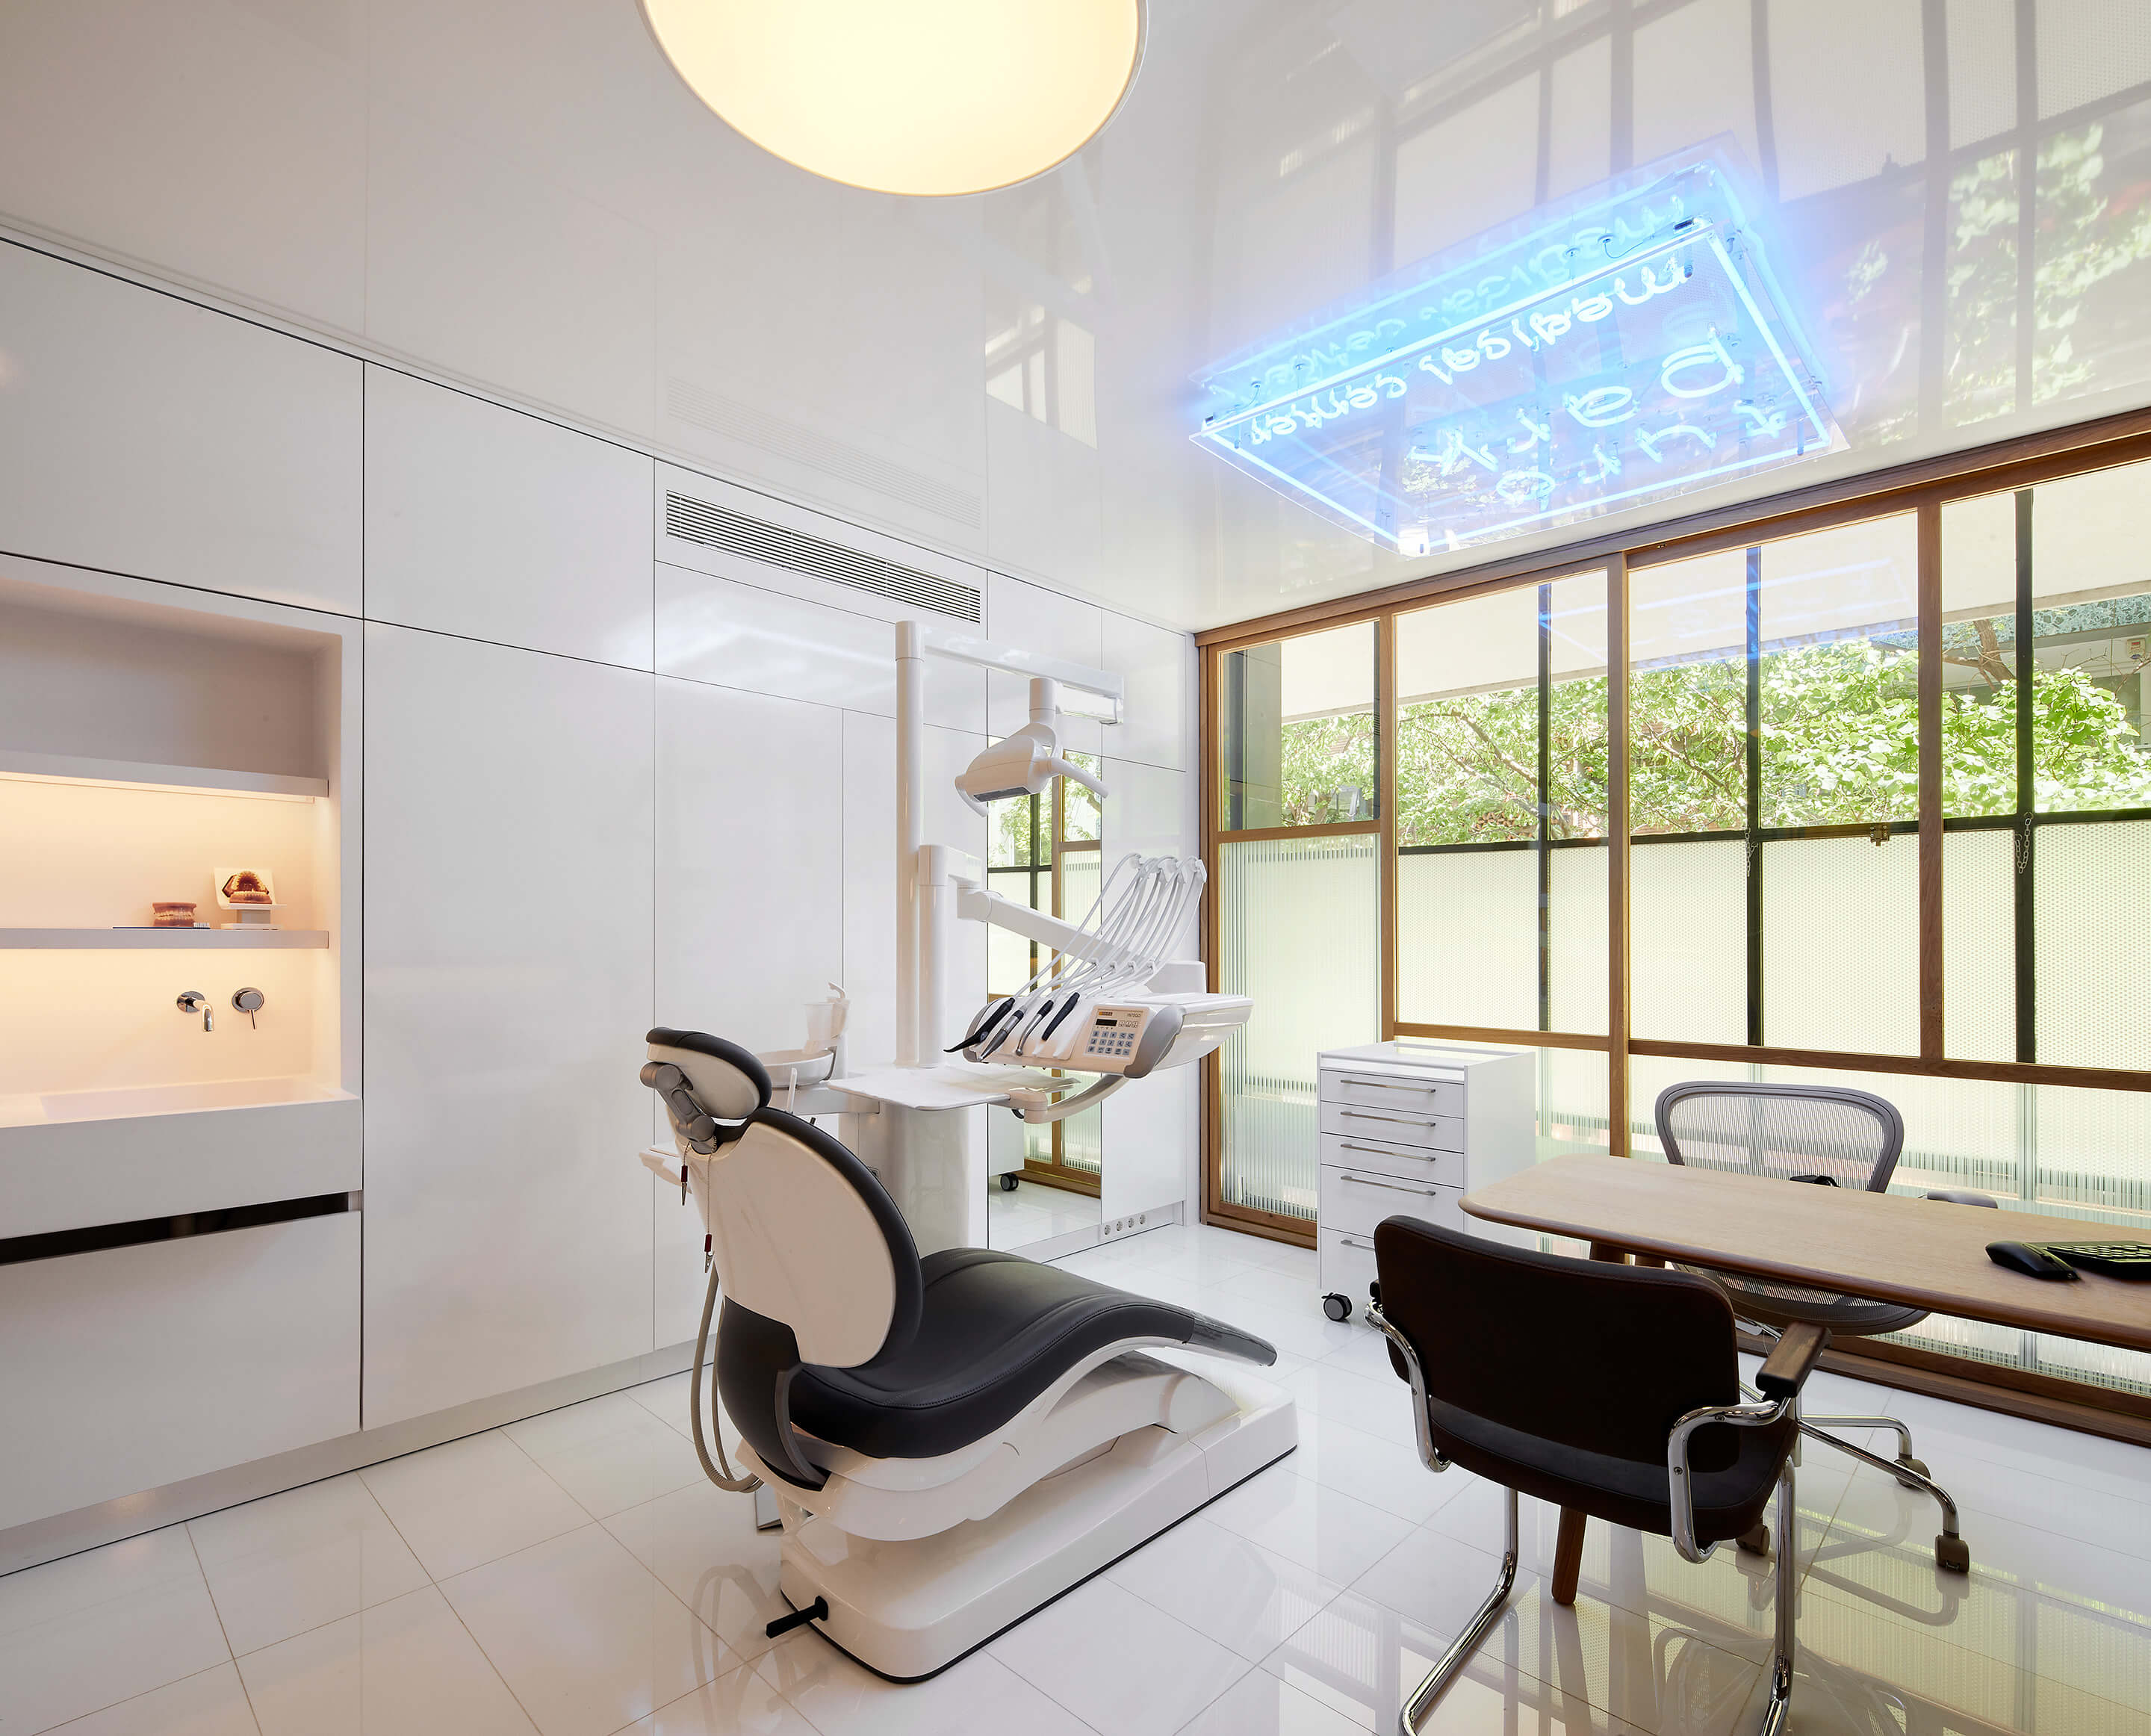 LR_CLINICA DENTAL_18